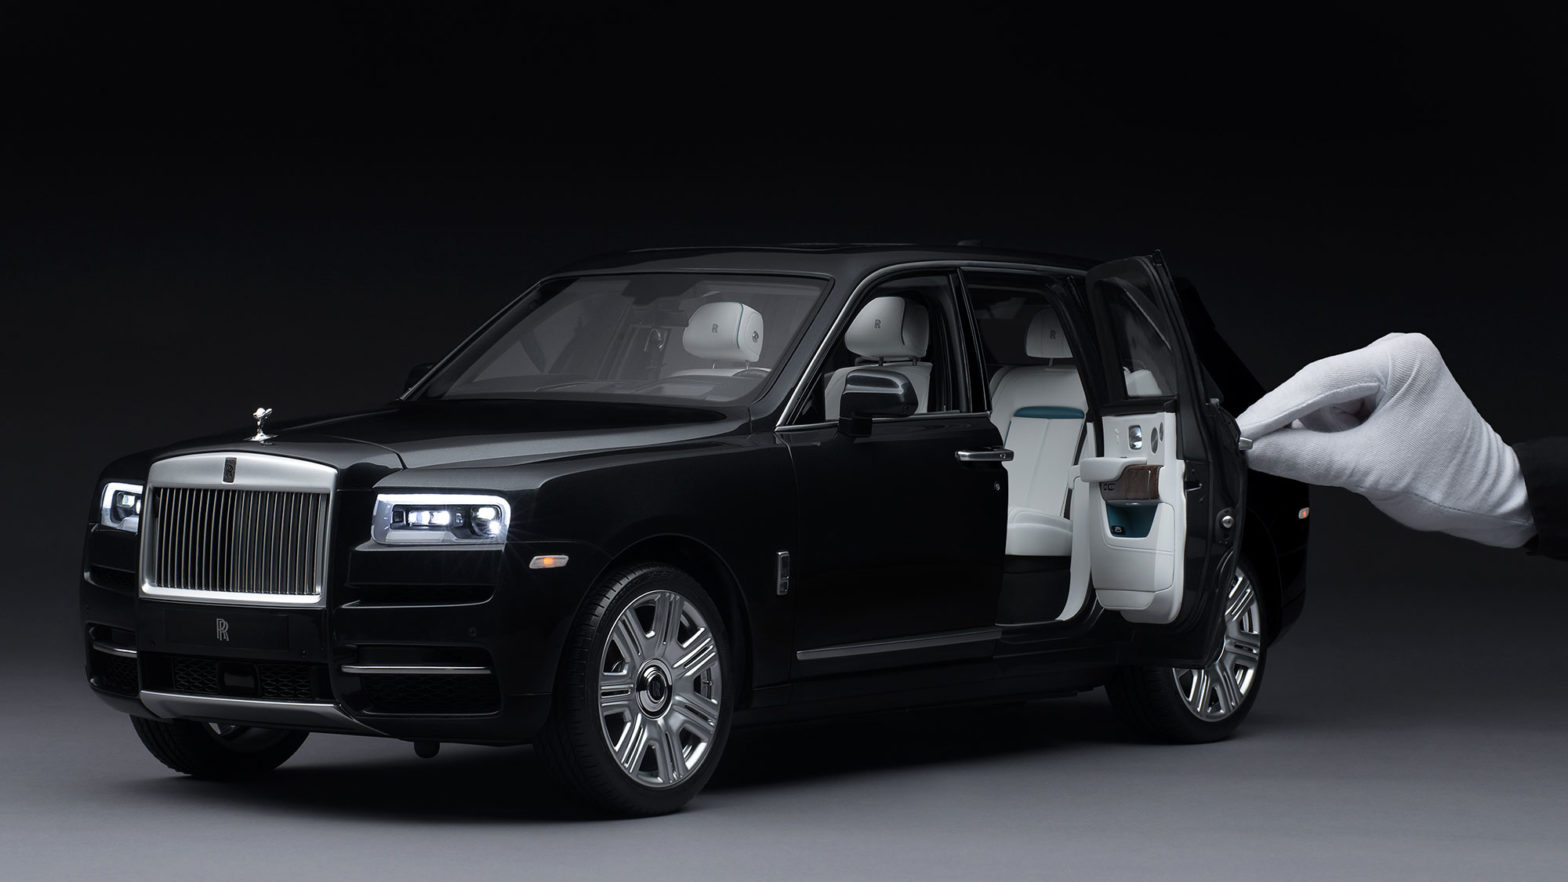 Rolls-Royce 1/8 Scale Replica Model Car Cullinan